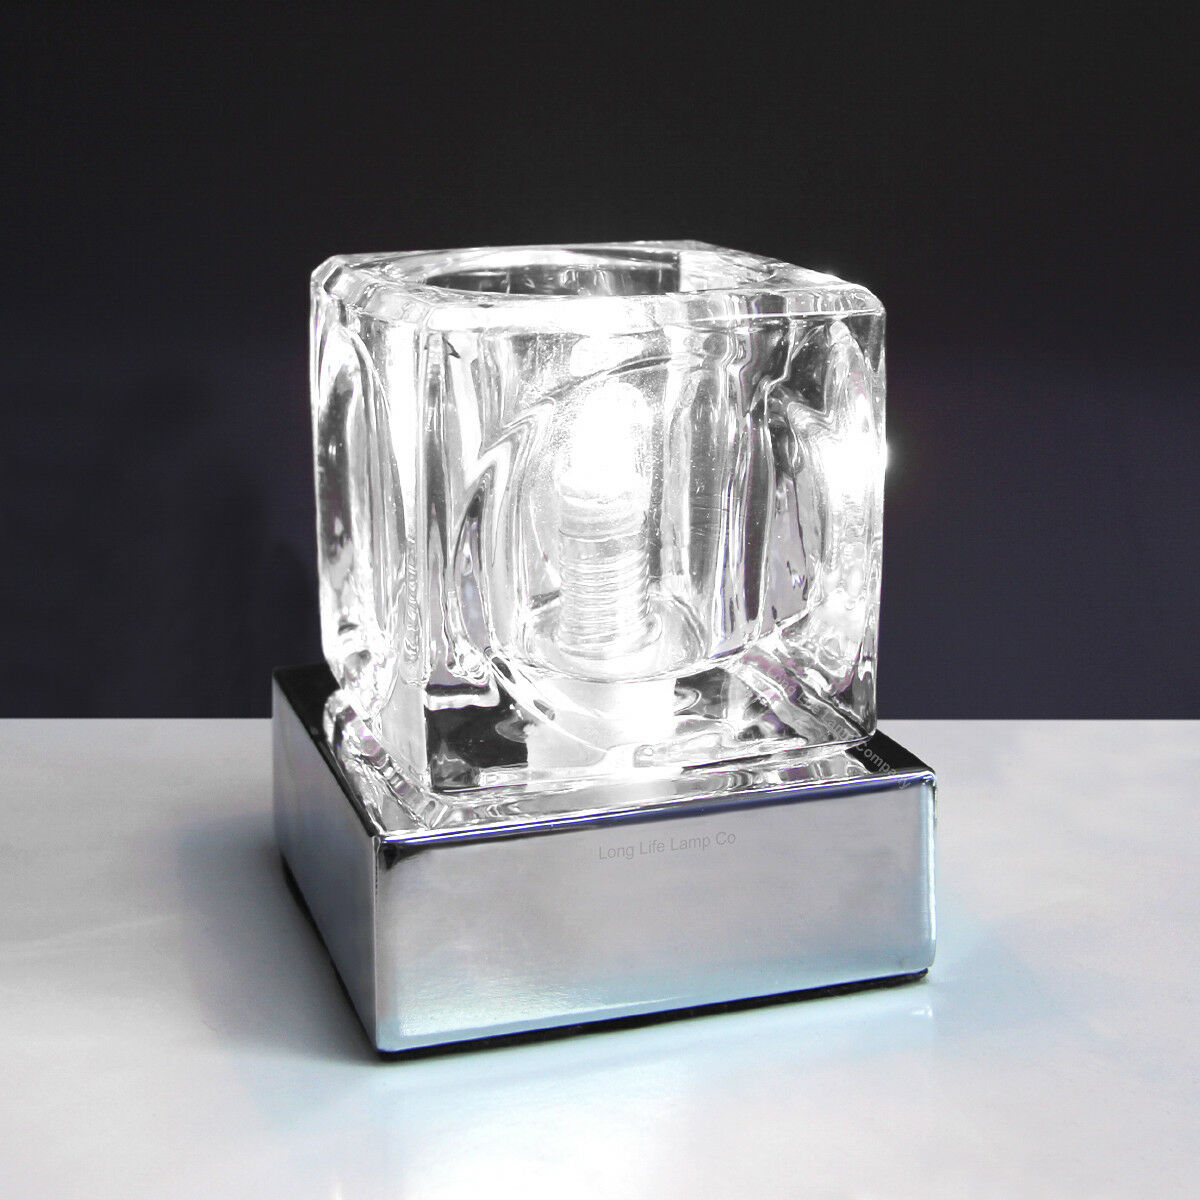 Bedside Lamp With Dimmer Switch Dimmable Touch Table Light Glass Ice Cube Bedside Study